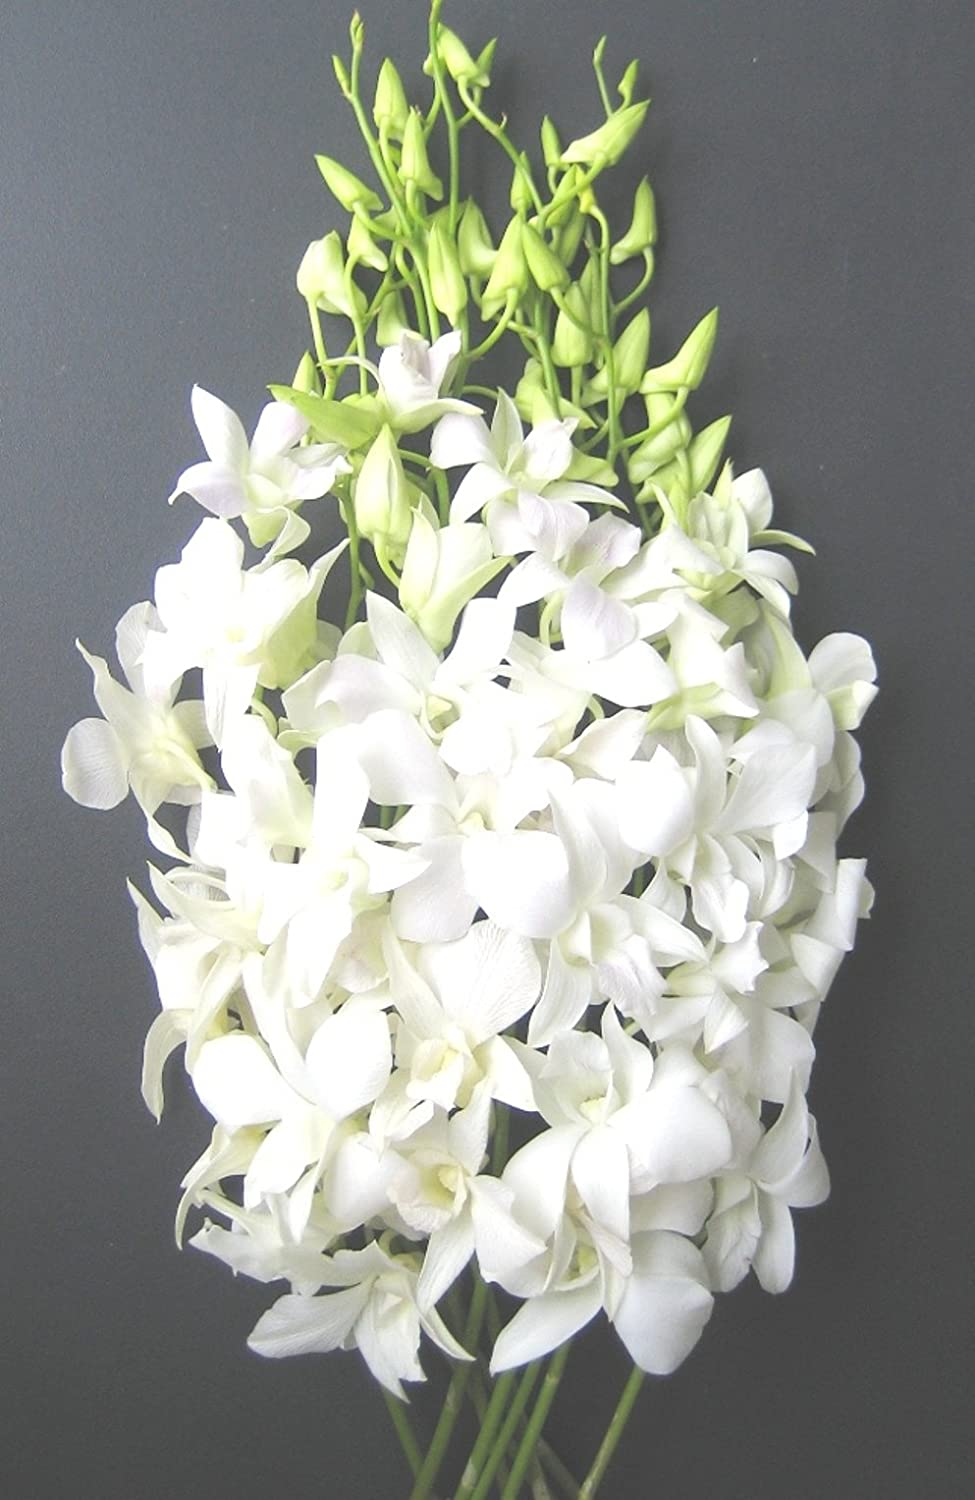 Amazon fresh flowers just orchids white dendrobium fresh amazon fresh flowers just orchids white dendrobium fresh cut format orchid flowers grocery gourmet food mightylinksfo